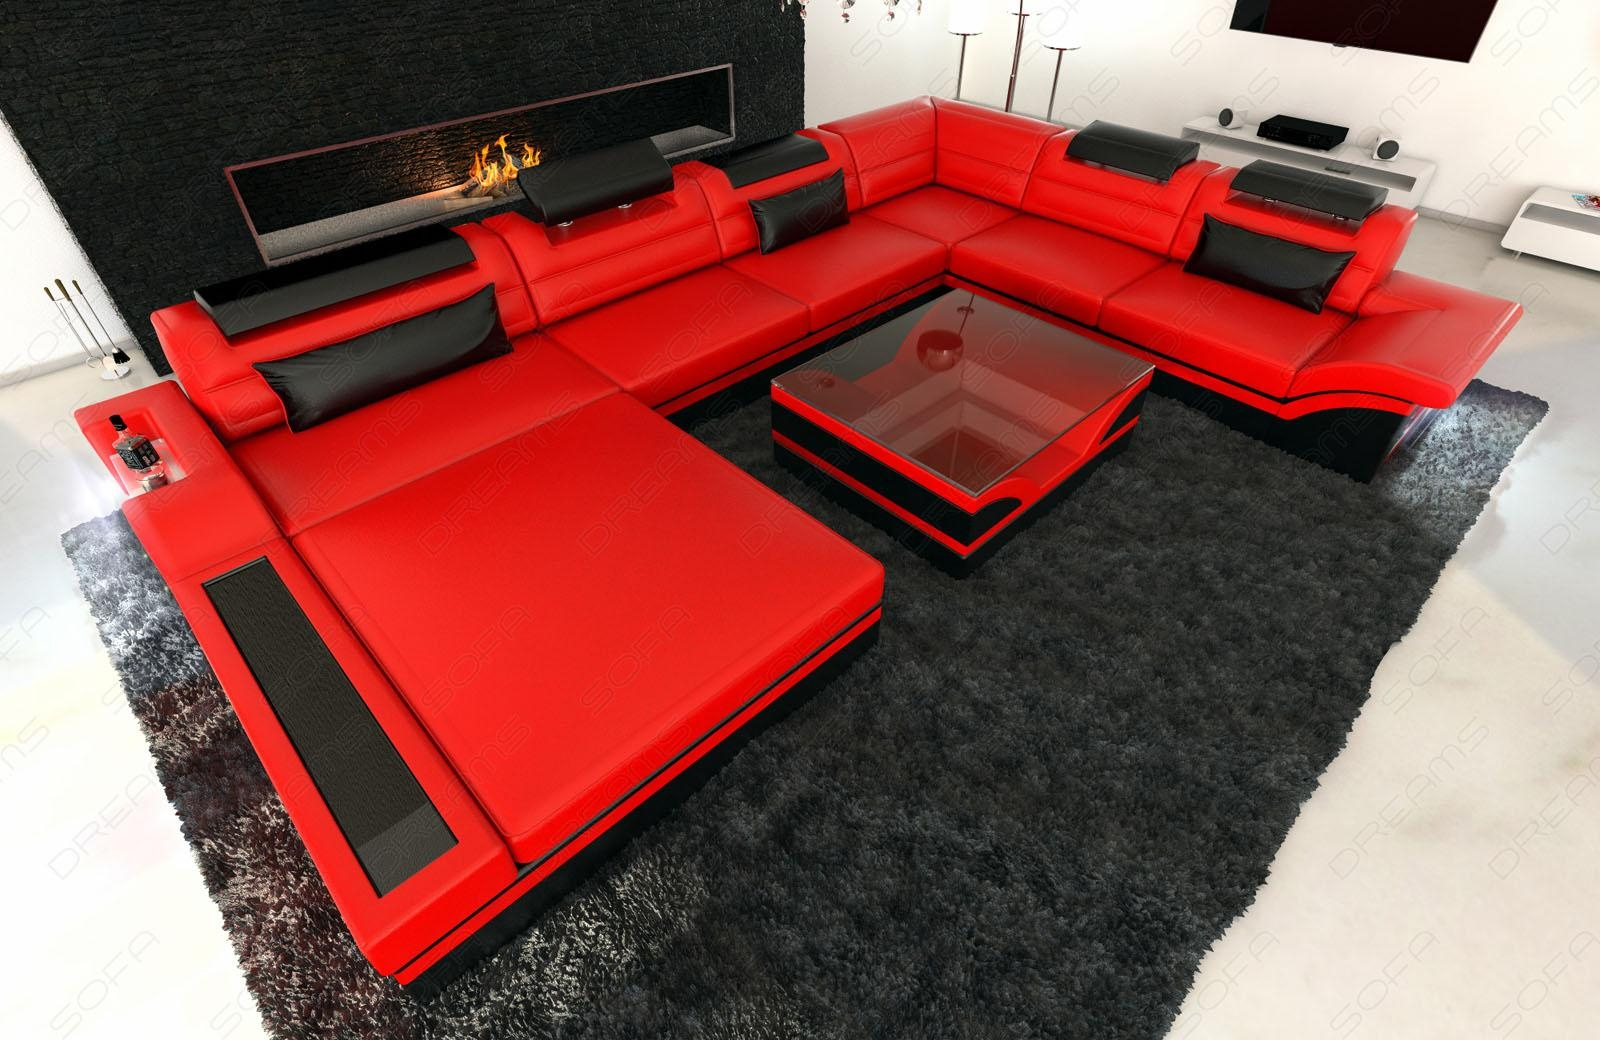 Design Sectional Sofa Mezzo Xxl With Led Lights Red Black | Ebay Intended For Sofas With Lights (Image 7 of 21)